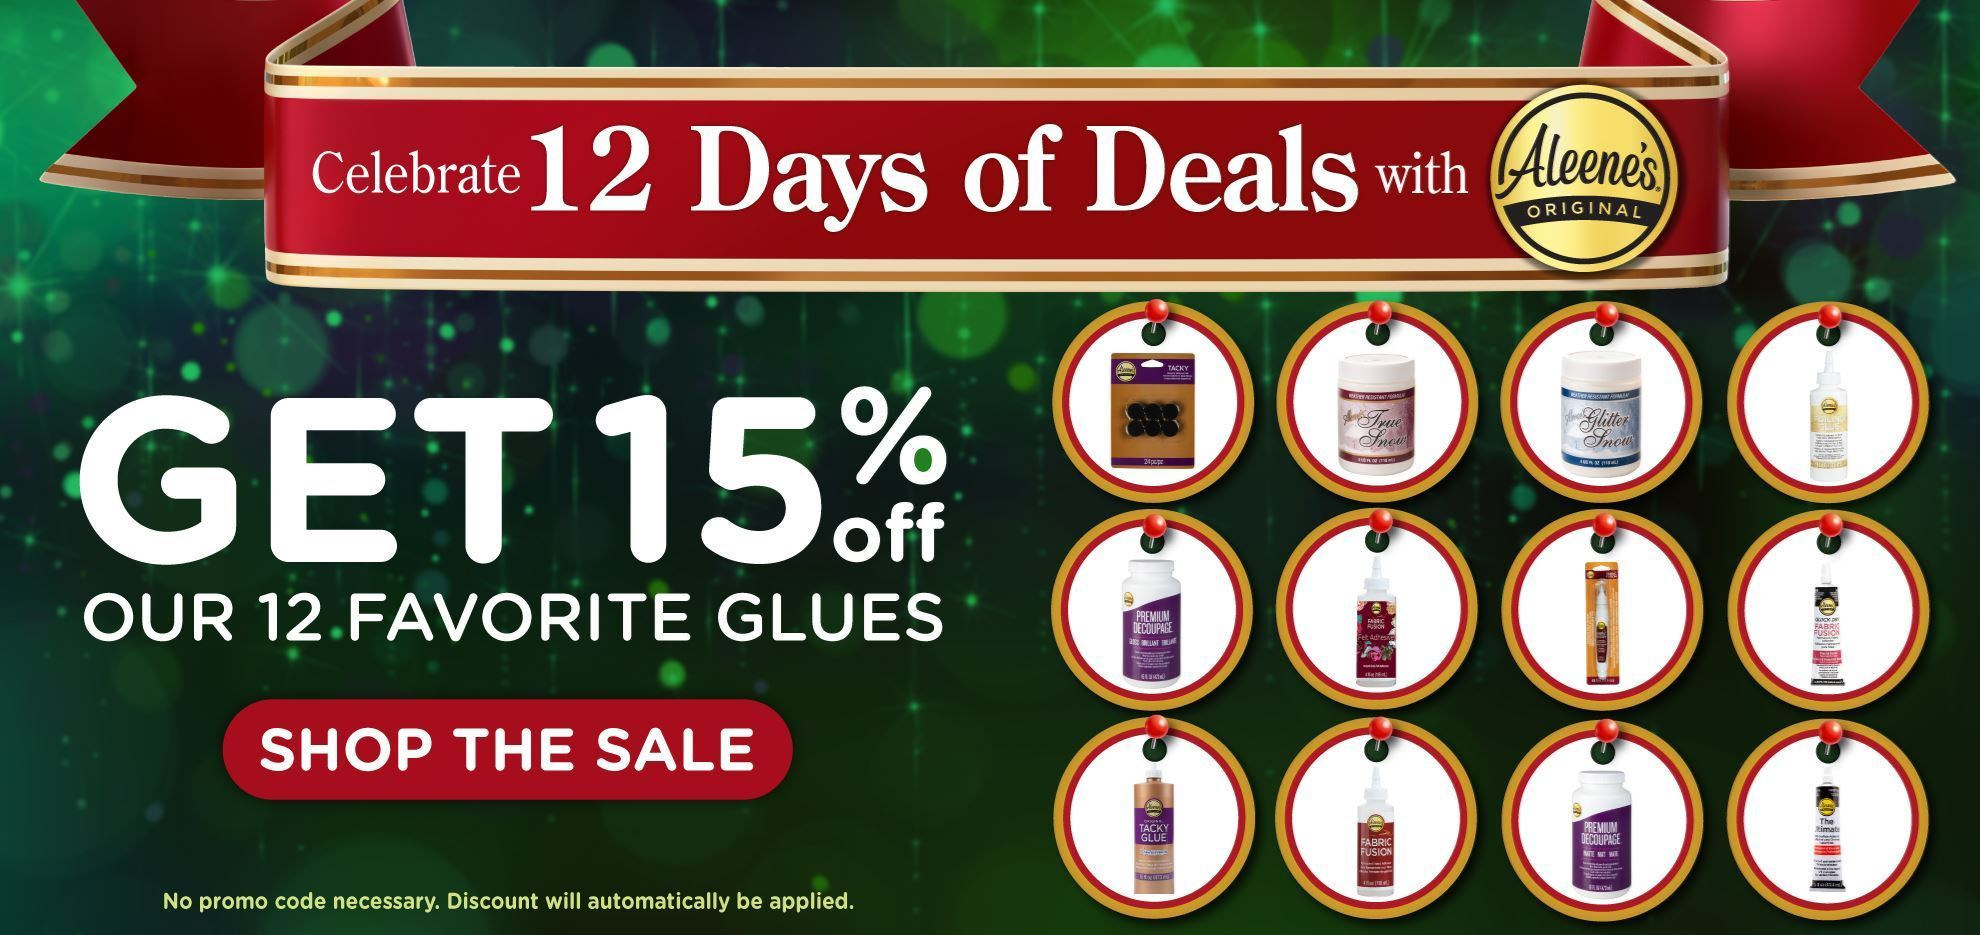 Aleene's Holiday 12 Days of Deals